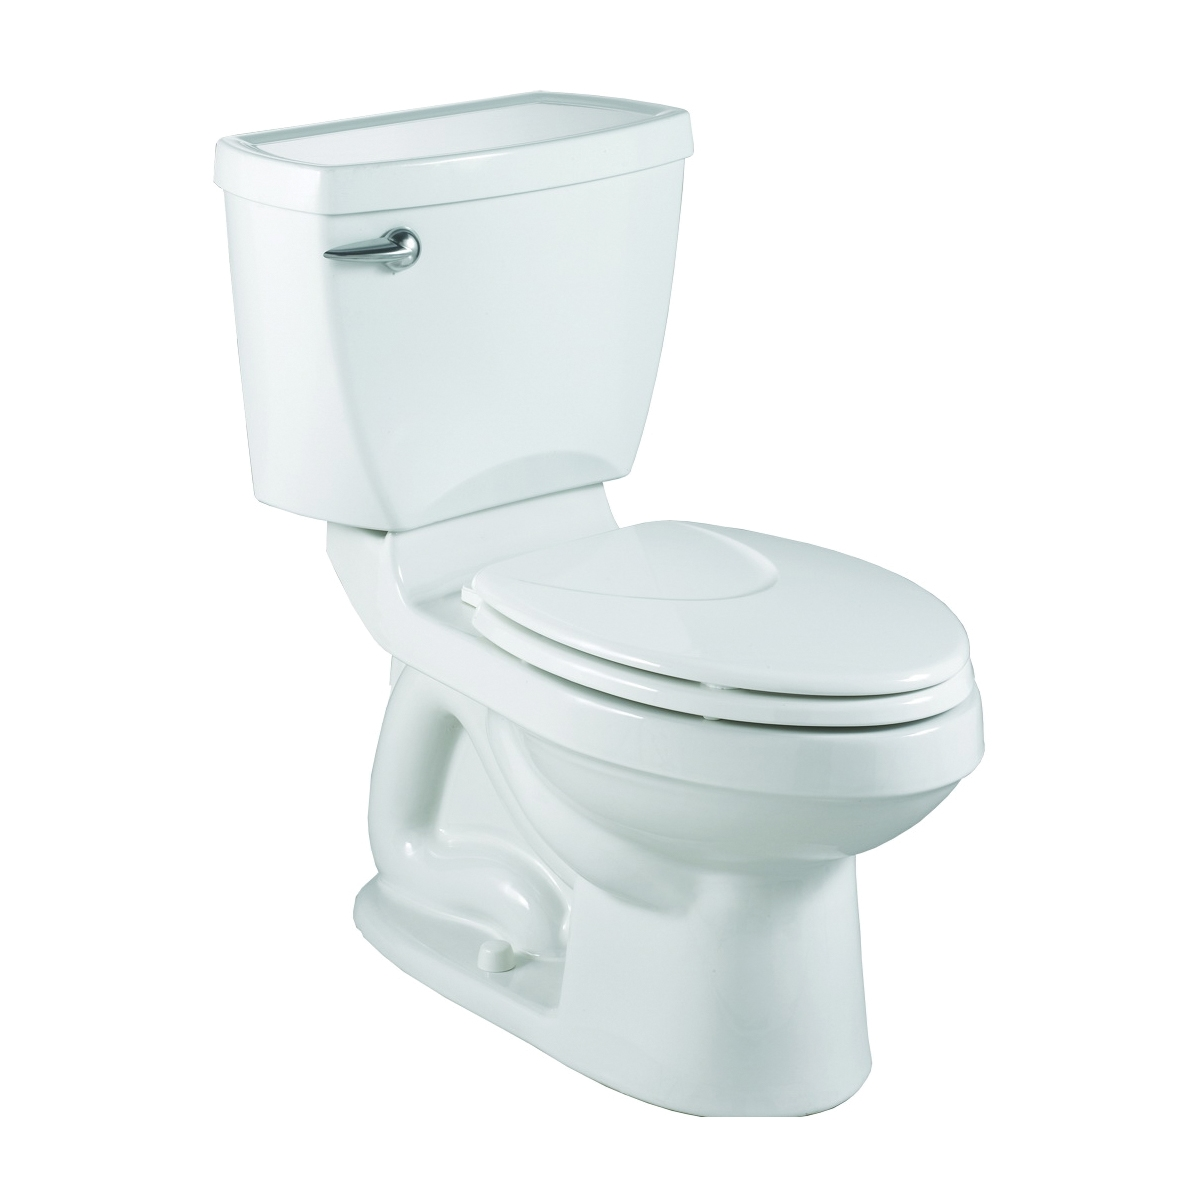 Picture of American Standard Champion 4 Series 3186128ST.020 Flush Toilet, Round Bowl, 1.28 gpf Flush, 12 in Rough-In, White